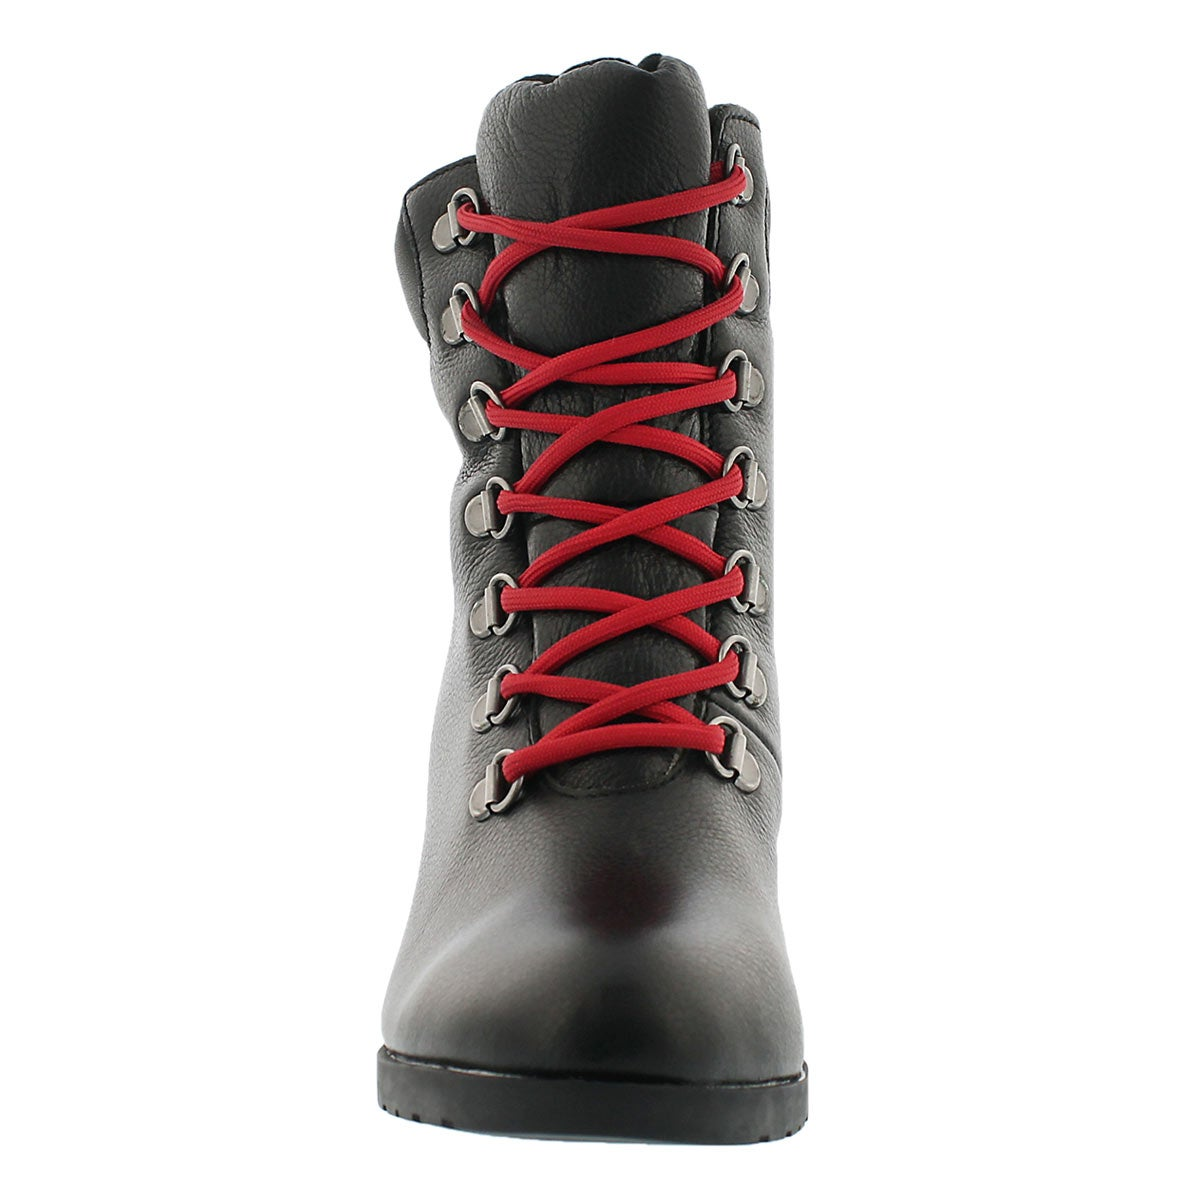 Lds Angie blk lace up wtpf ankle boot